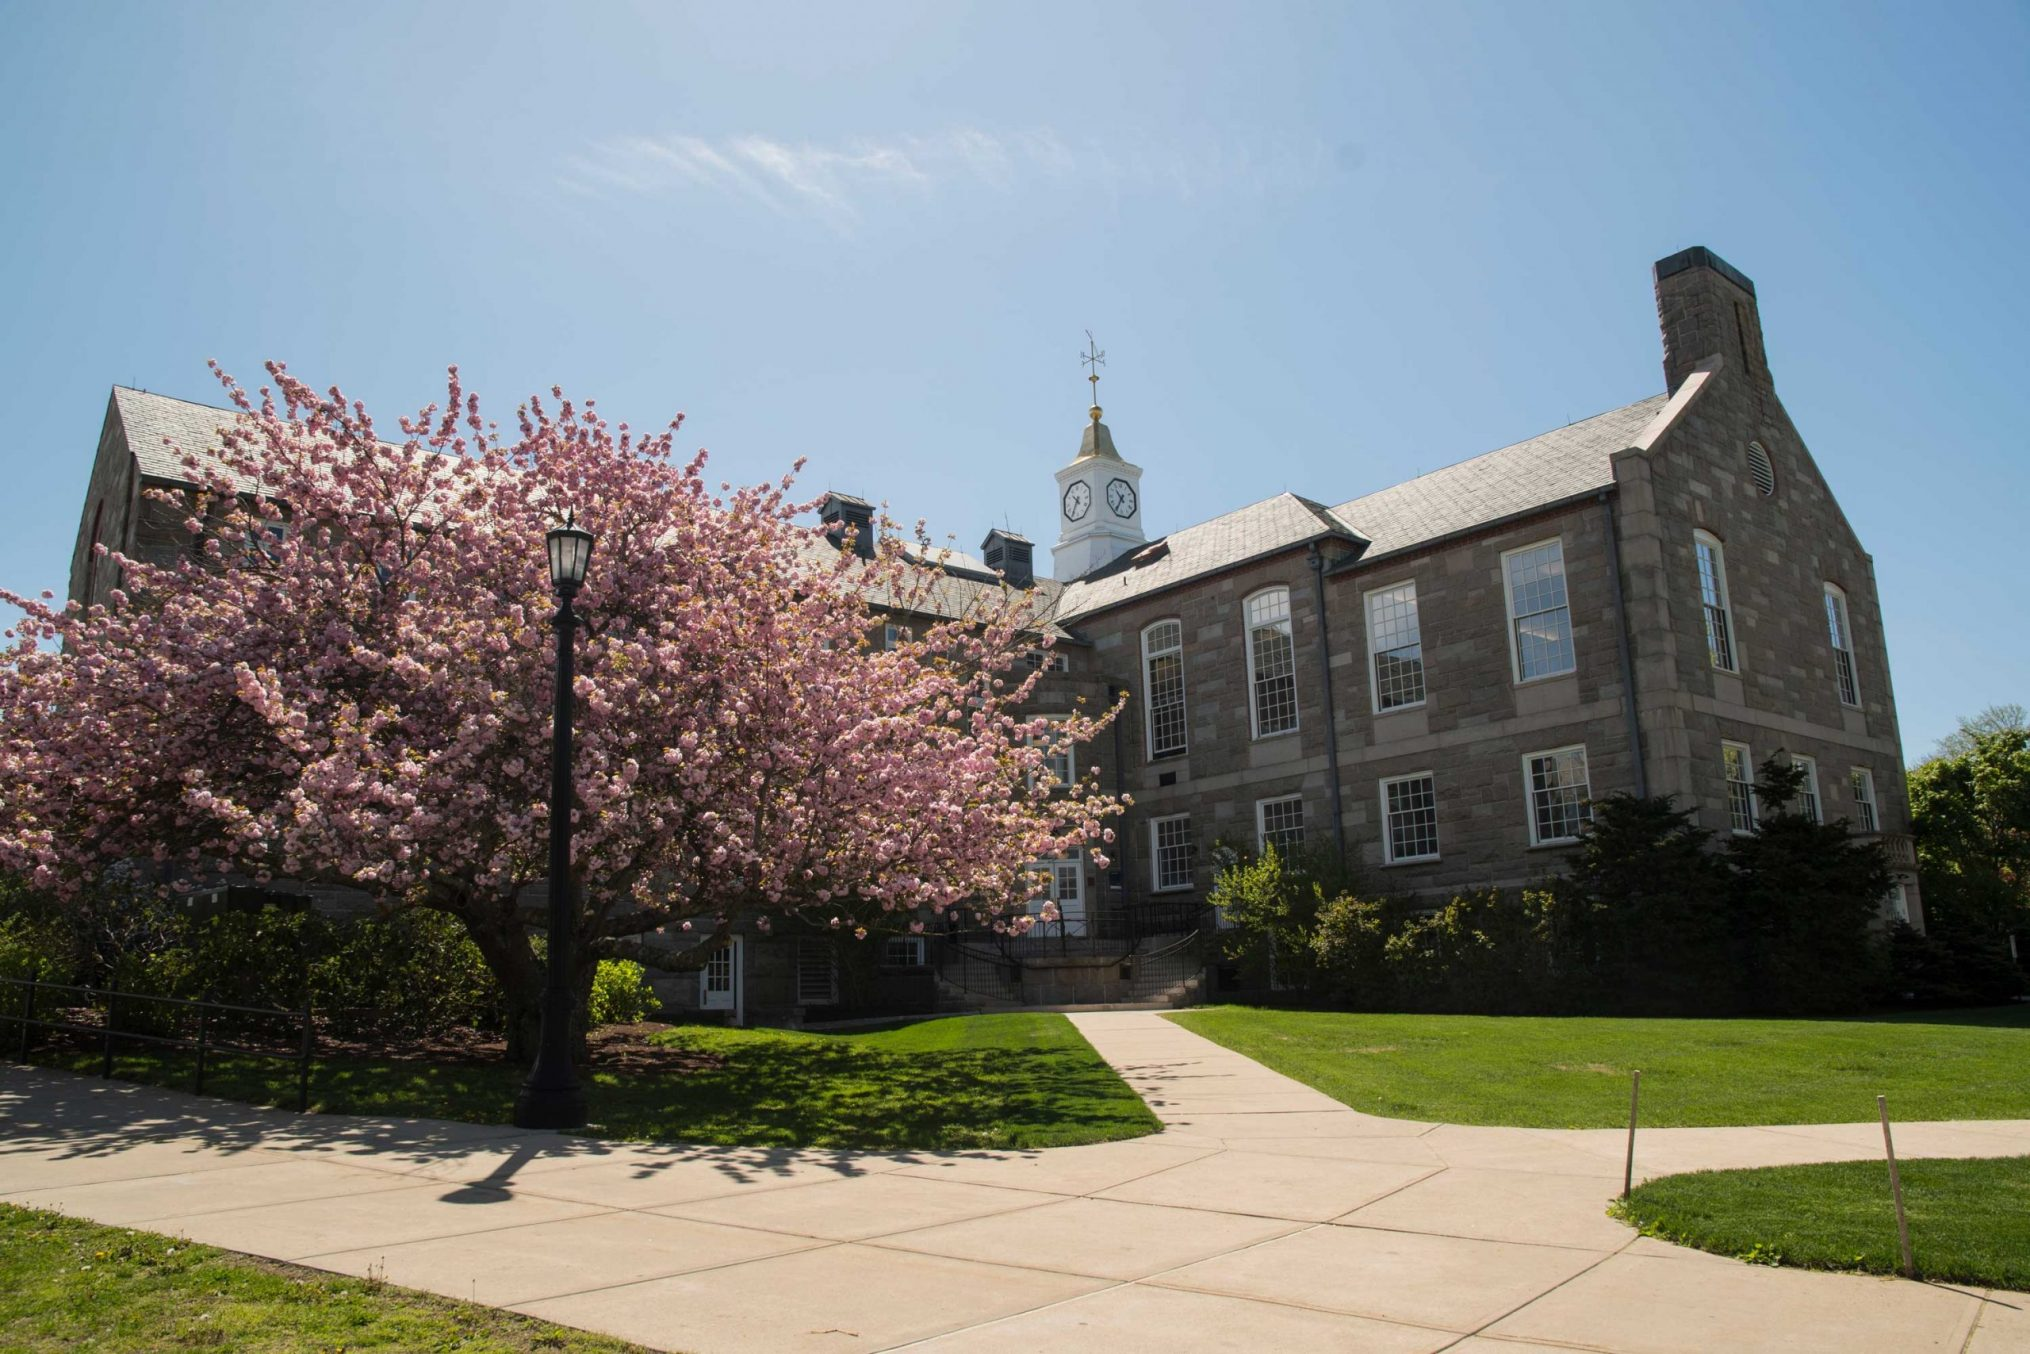 The picture shows a university building on the URI campus. In the foreground is a flowering cherry tree.